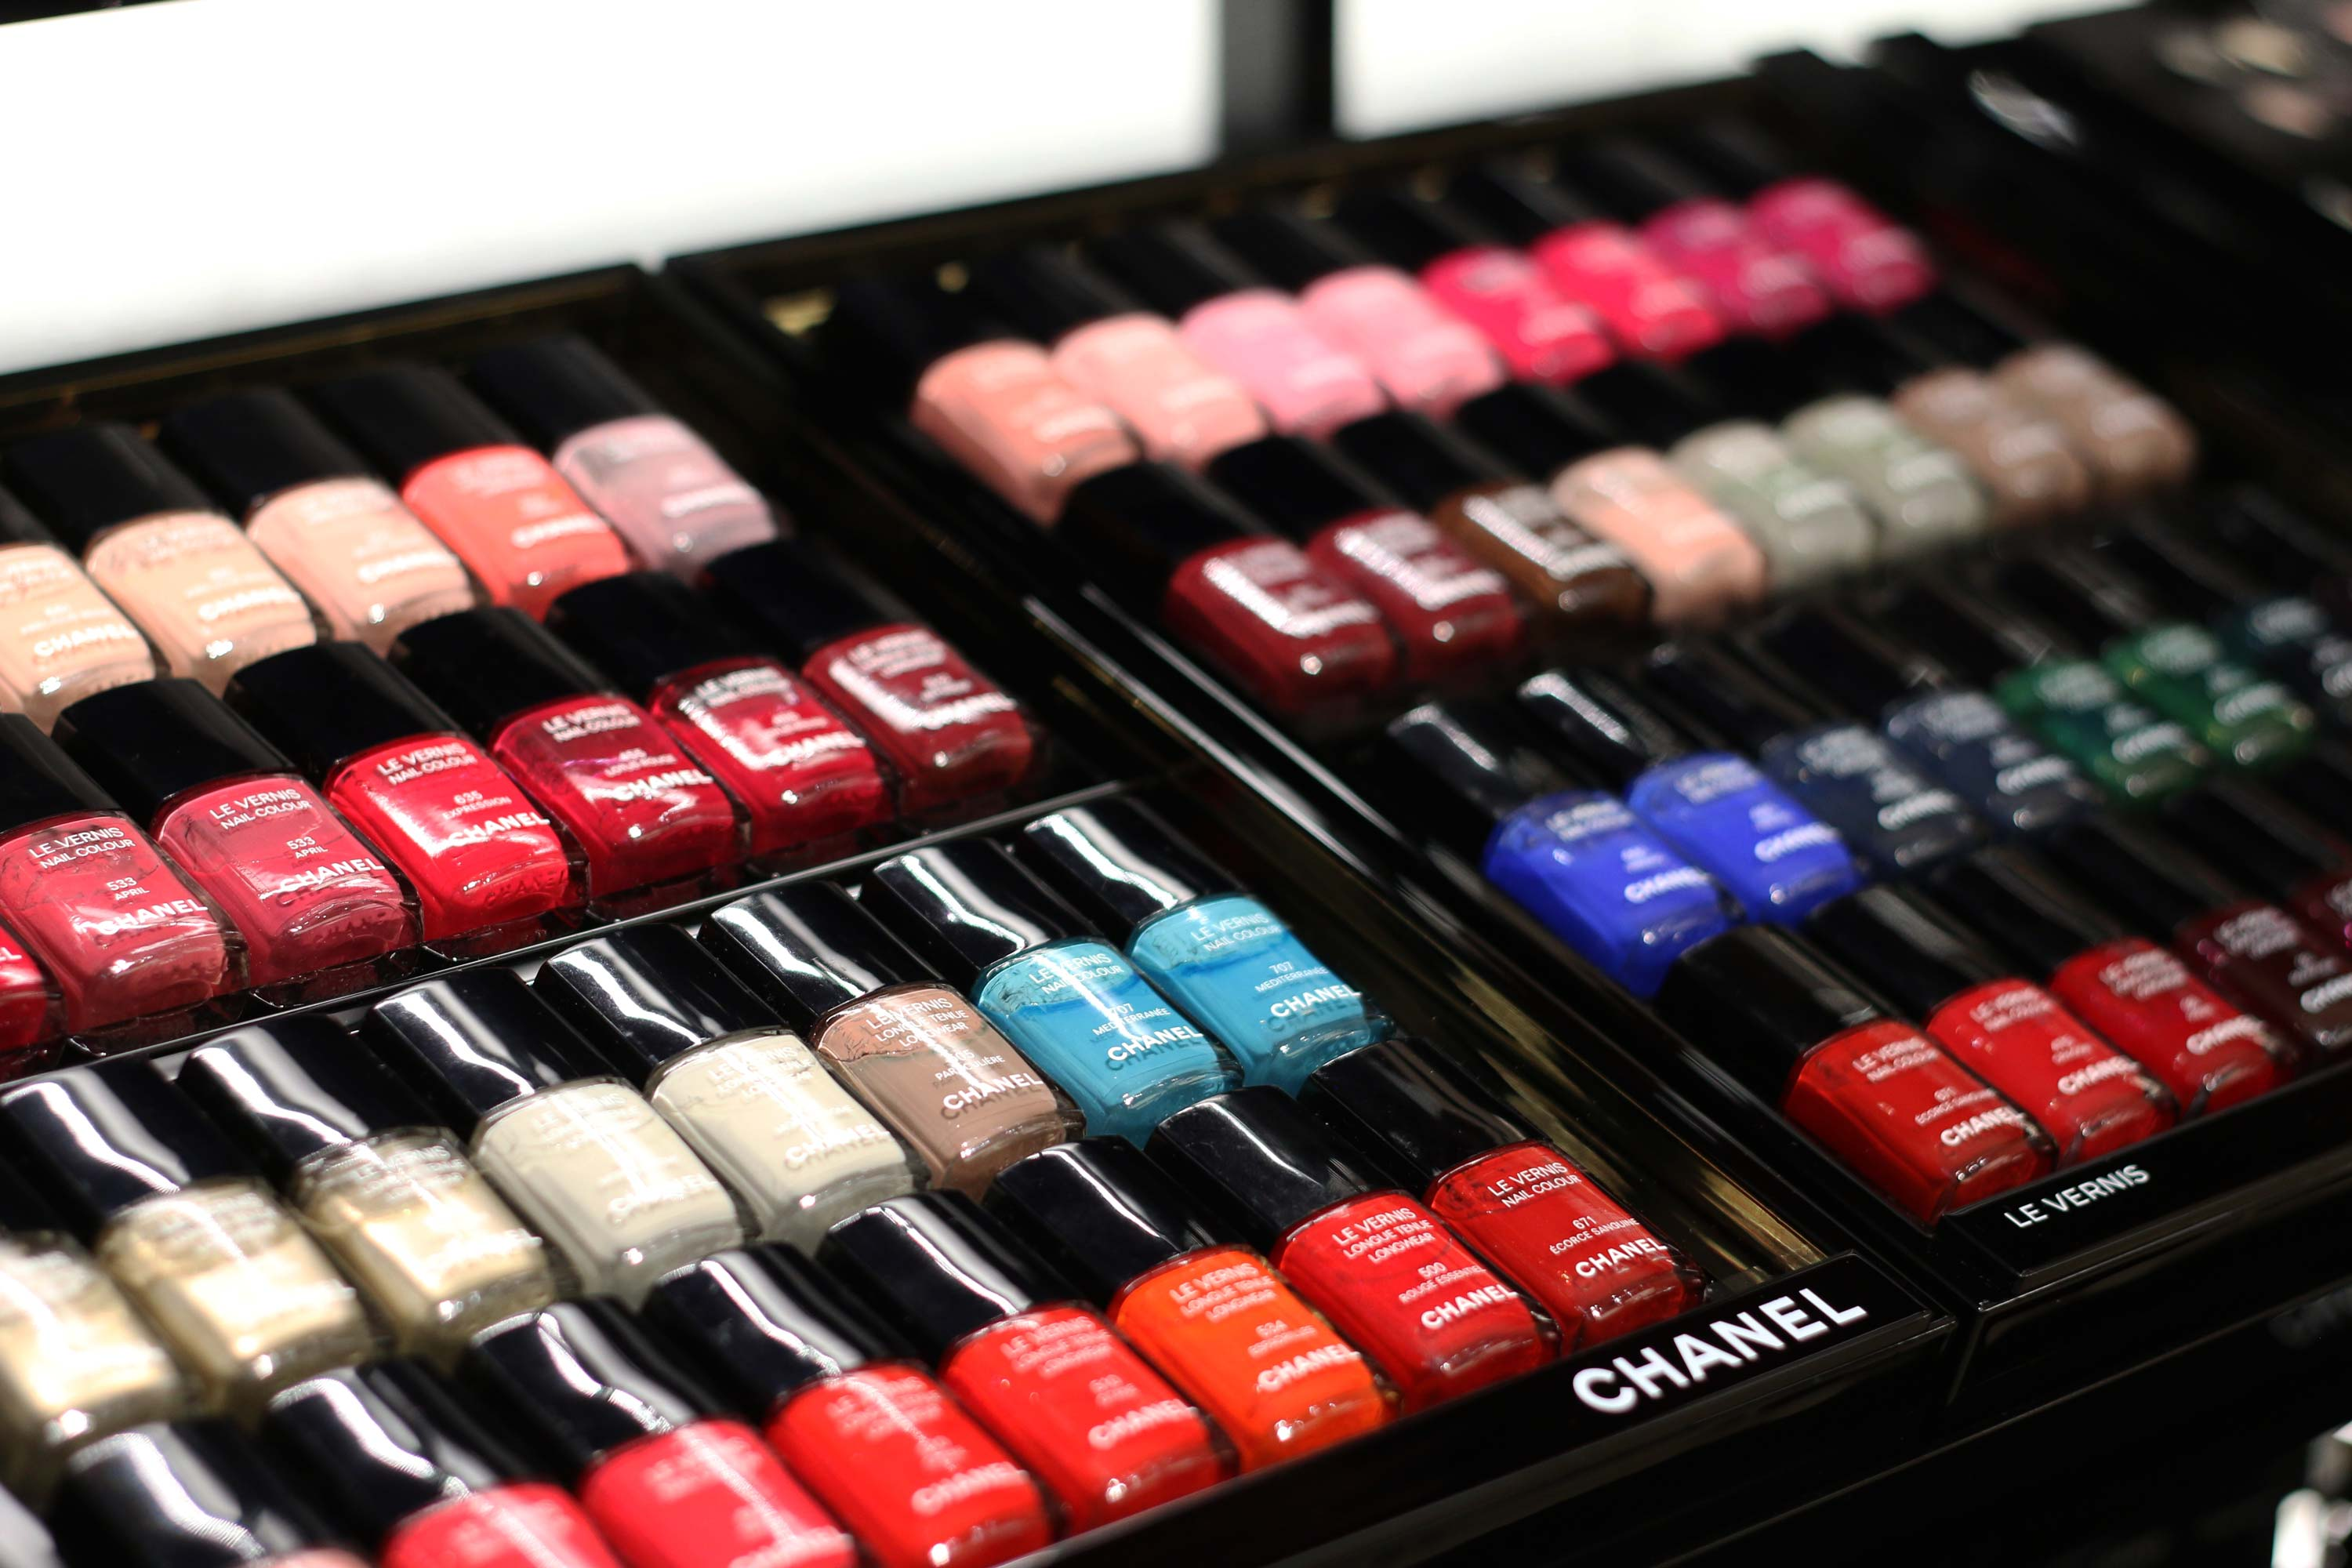 chanel-nagellack-boutique-hamburg